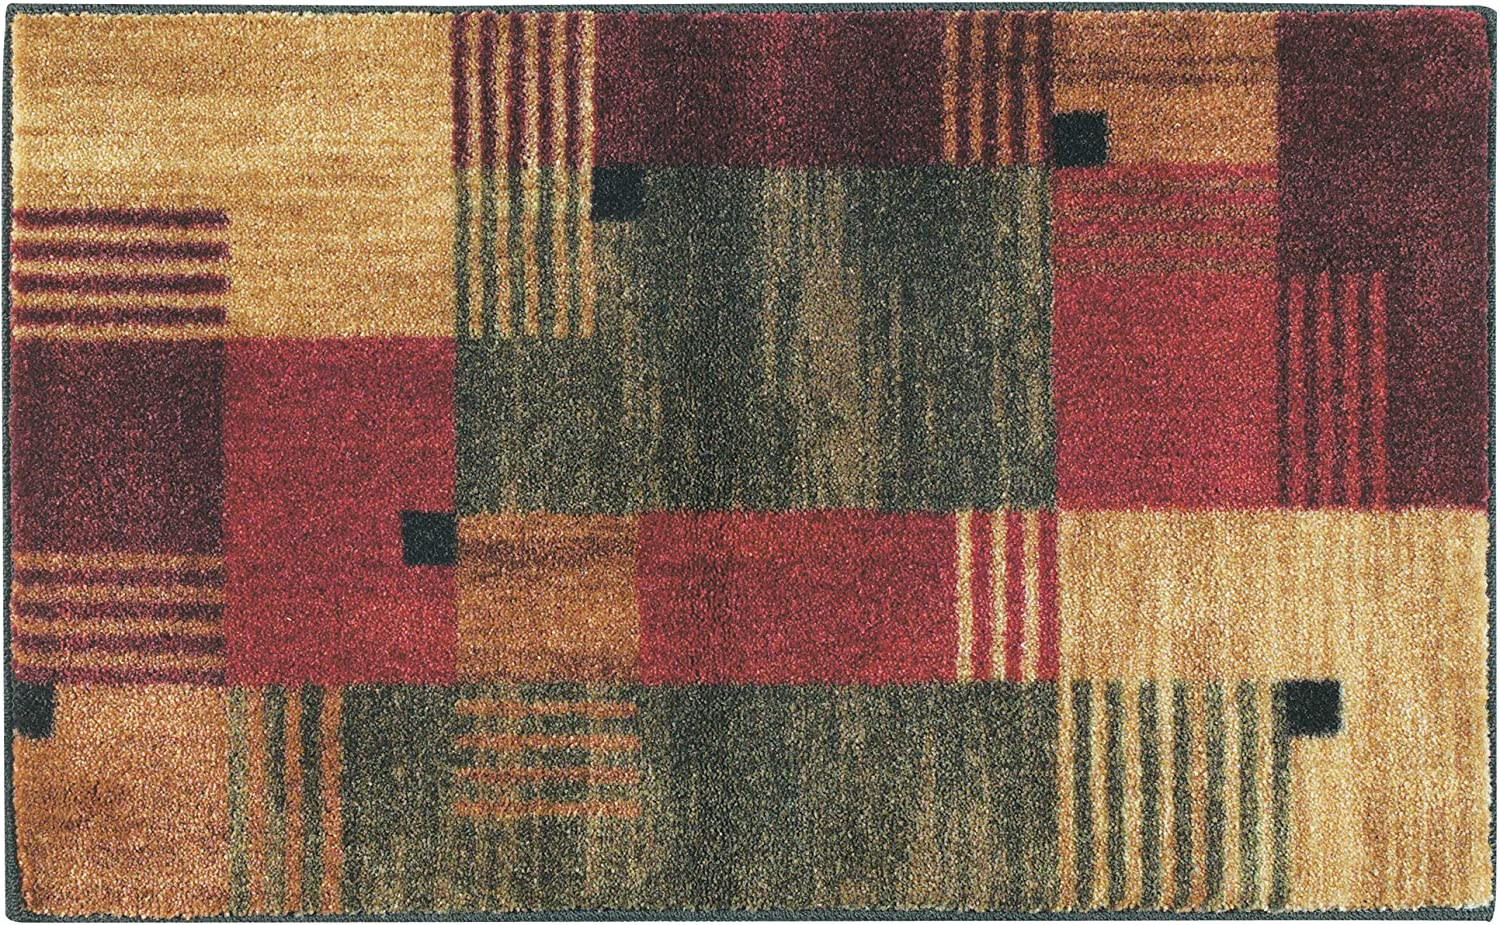 Mohawk Home New Wave Alliance Geometric Printed Area Rug,1'8x2'10,Multicolor